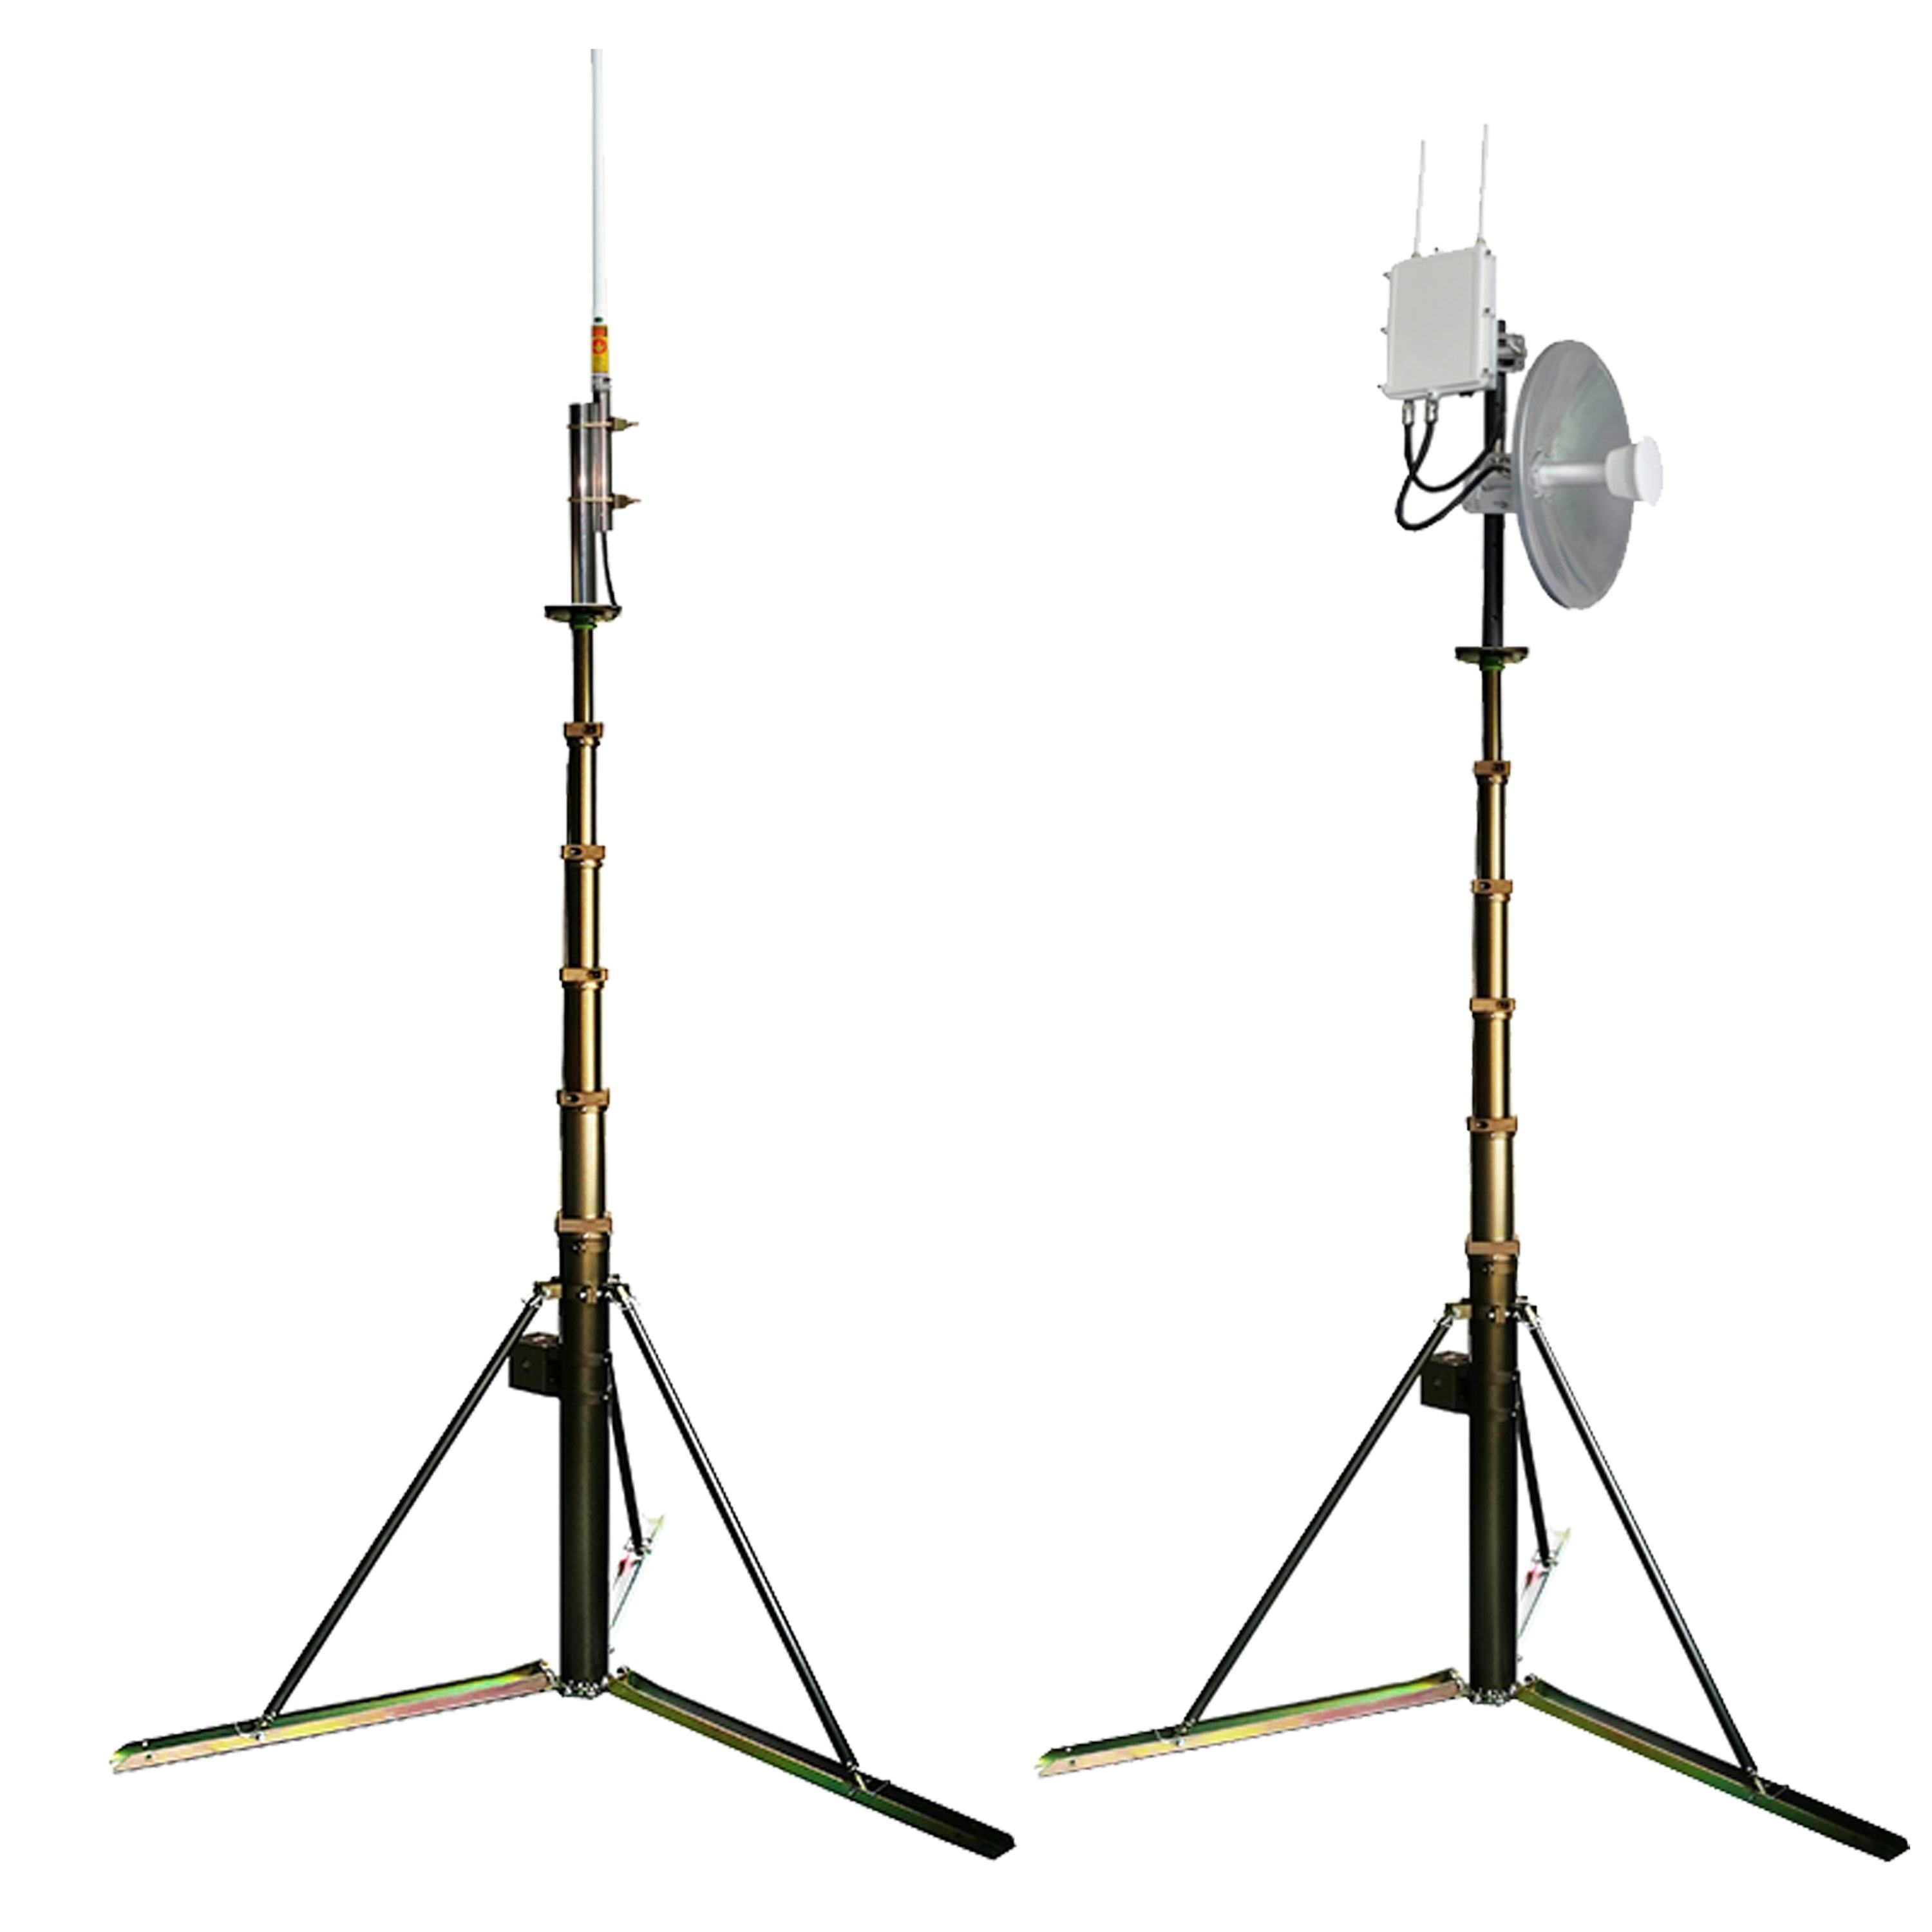 Portable 10m Aluminum Telescopic Antenna Mast Tripod Telescopic Mast Tower for Antenna